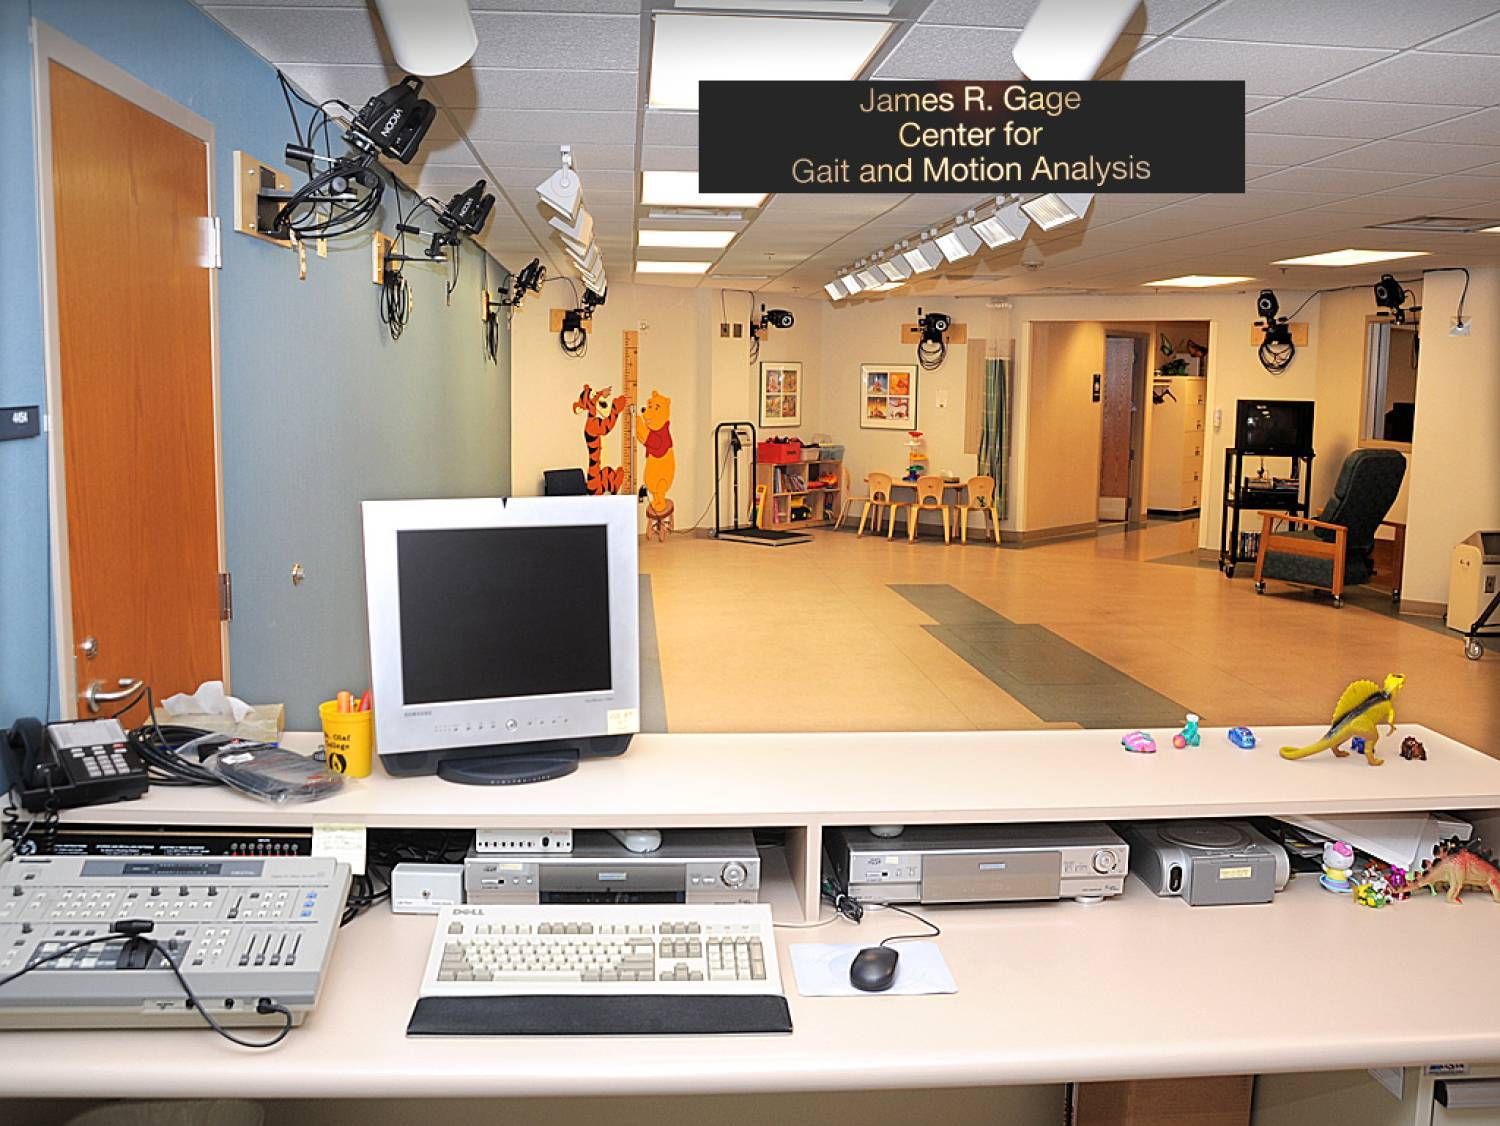 The James R. Gage Gait and Motion Analysis Lab is one of the busiest centers of its kind in the world.